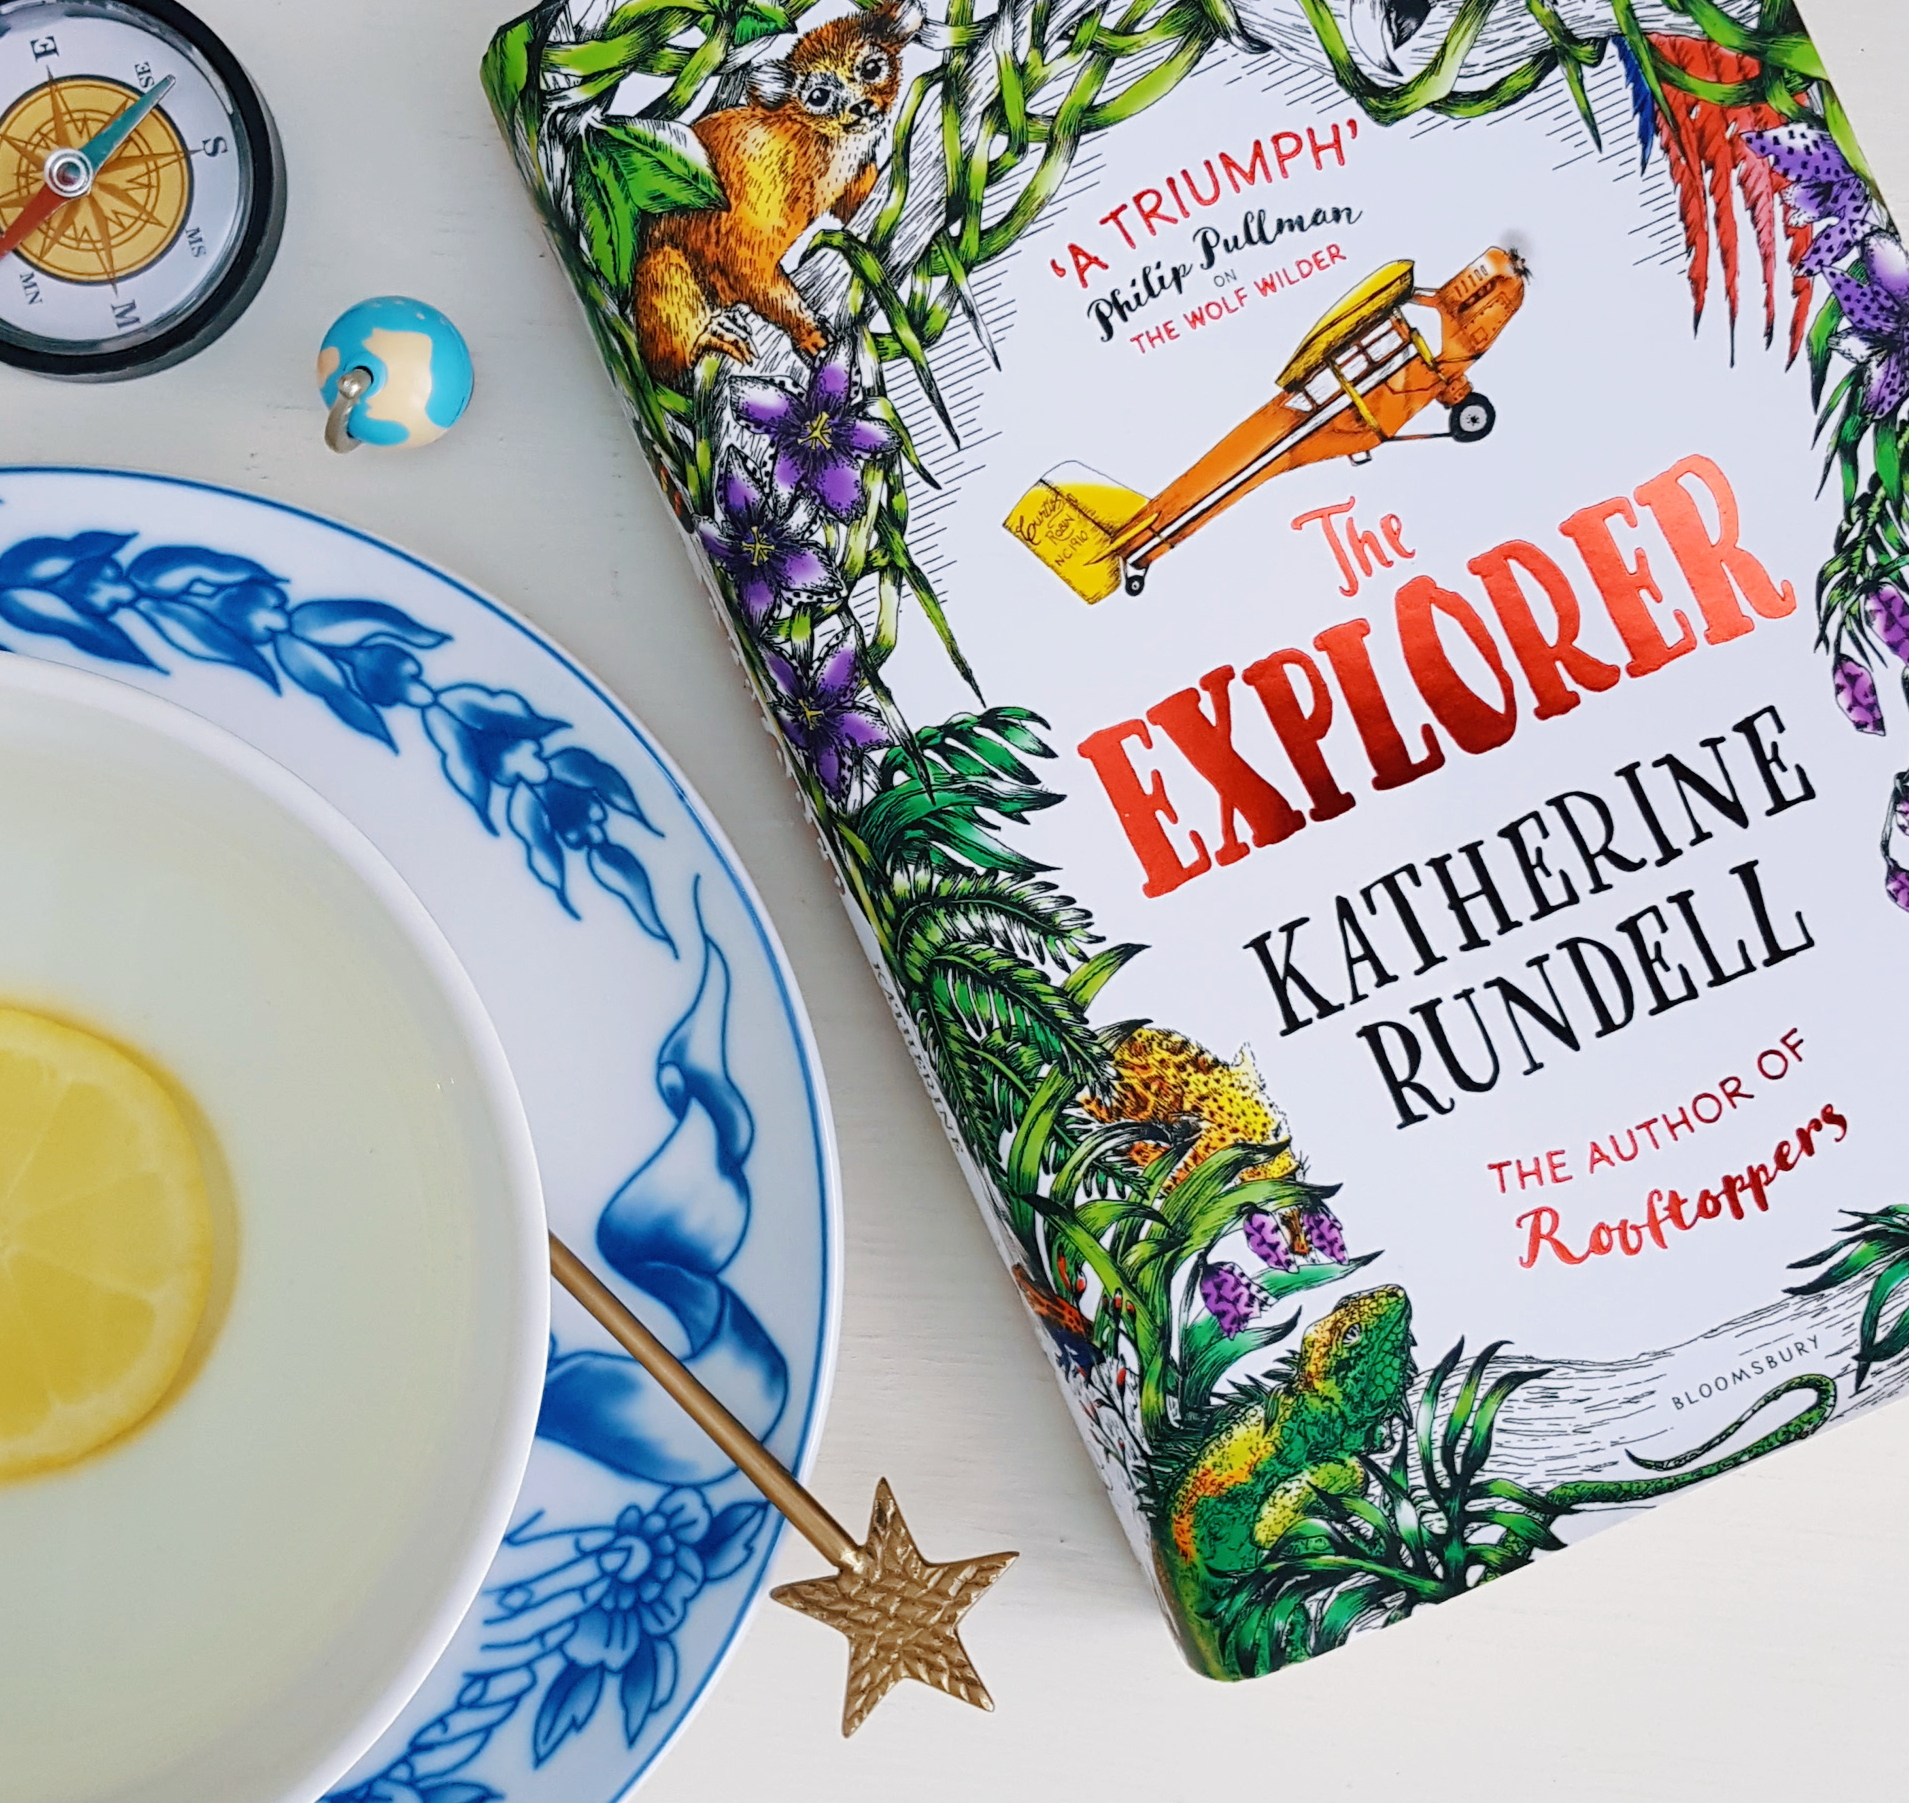 The Explorer by Katherine Rundell book cover